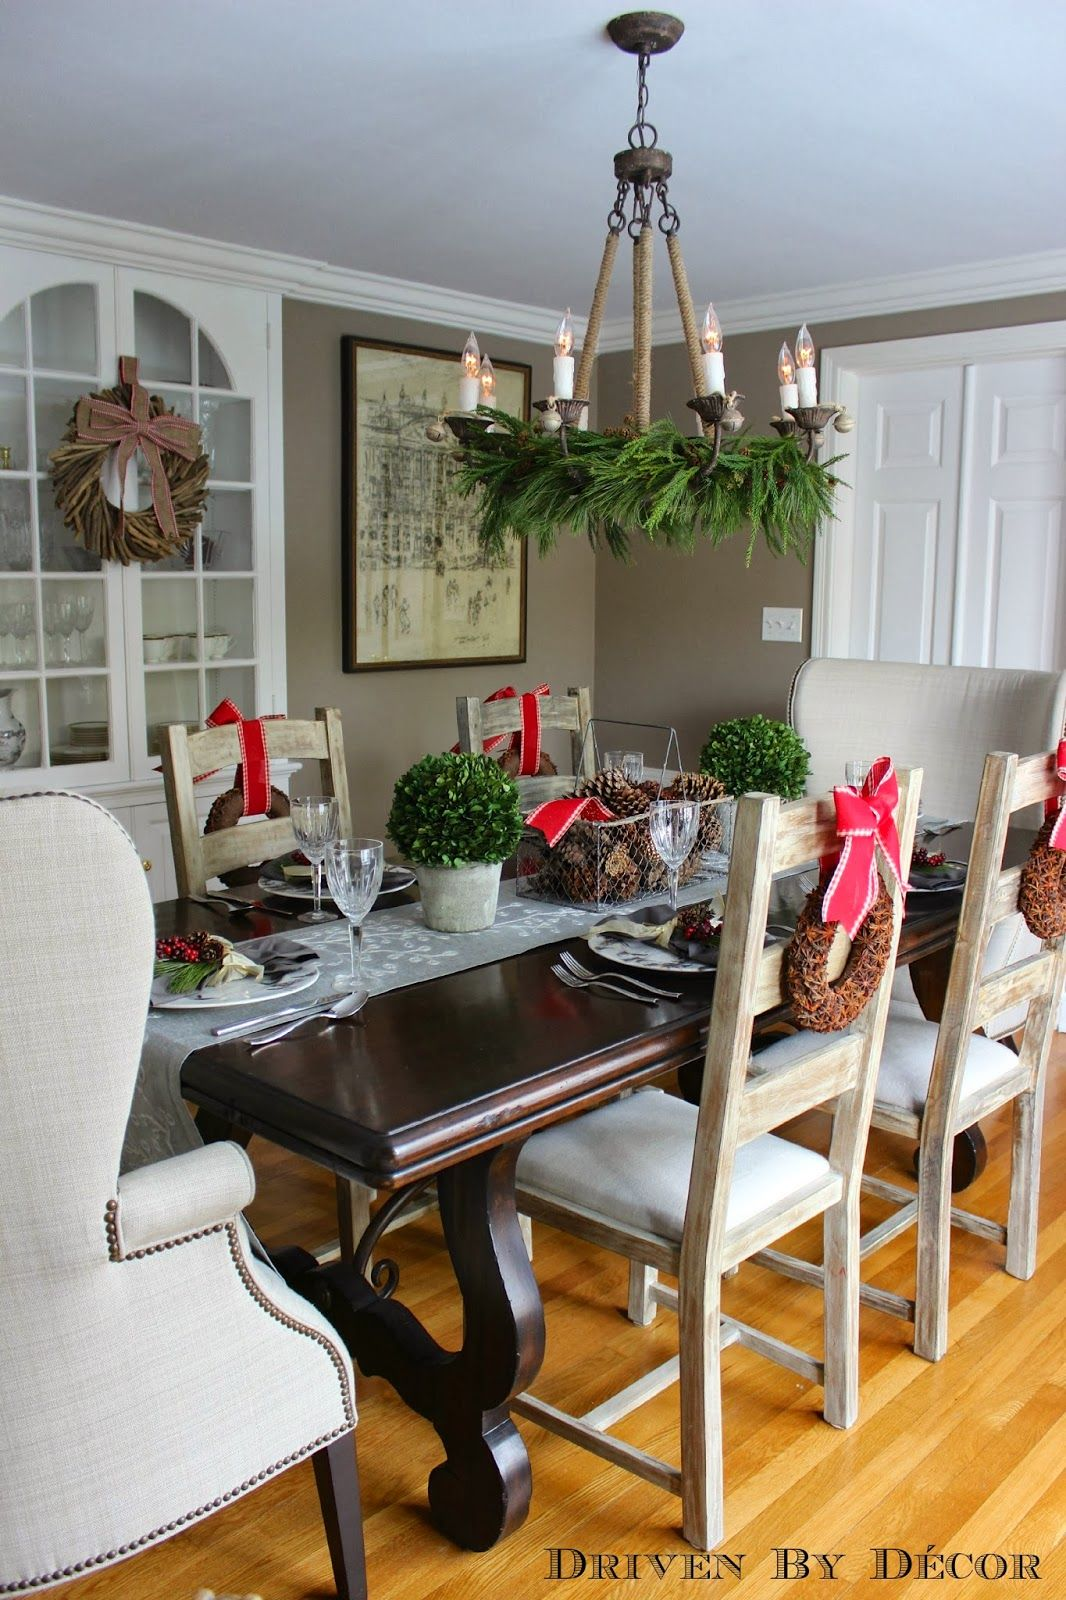 Our Christmas Home Tour  Fresh Green Chandeliers And Room Best Christmas Decorations For Dining Room Inspiration Design